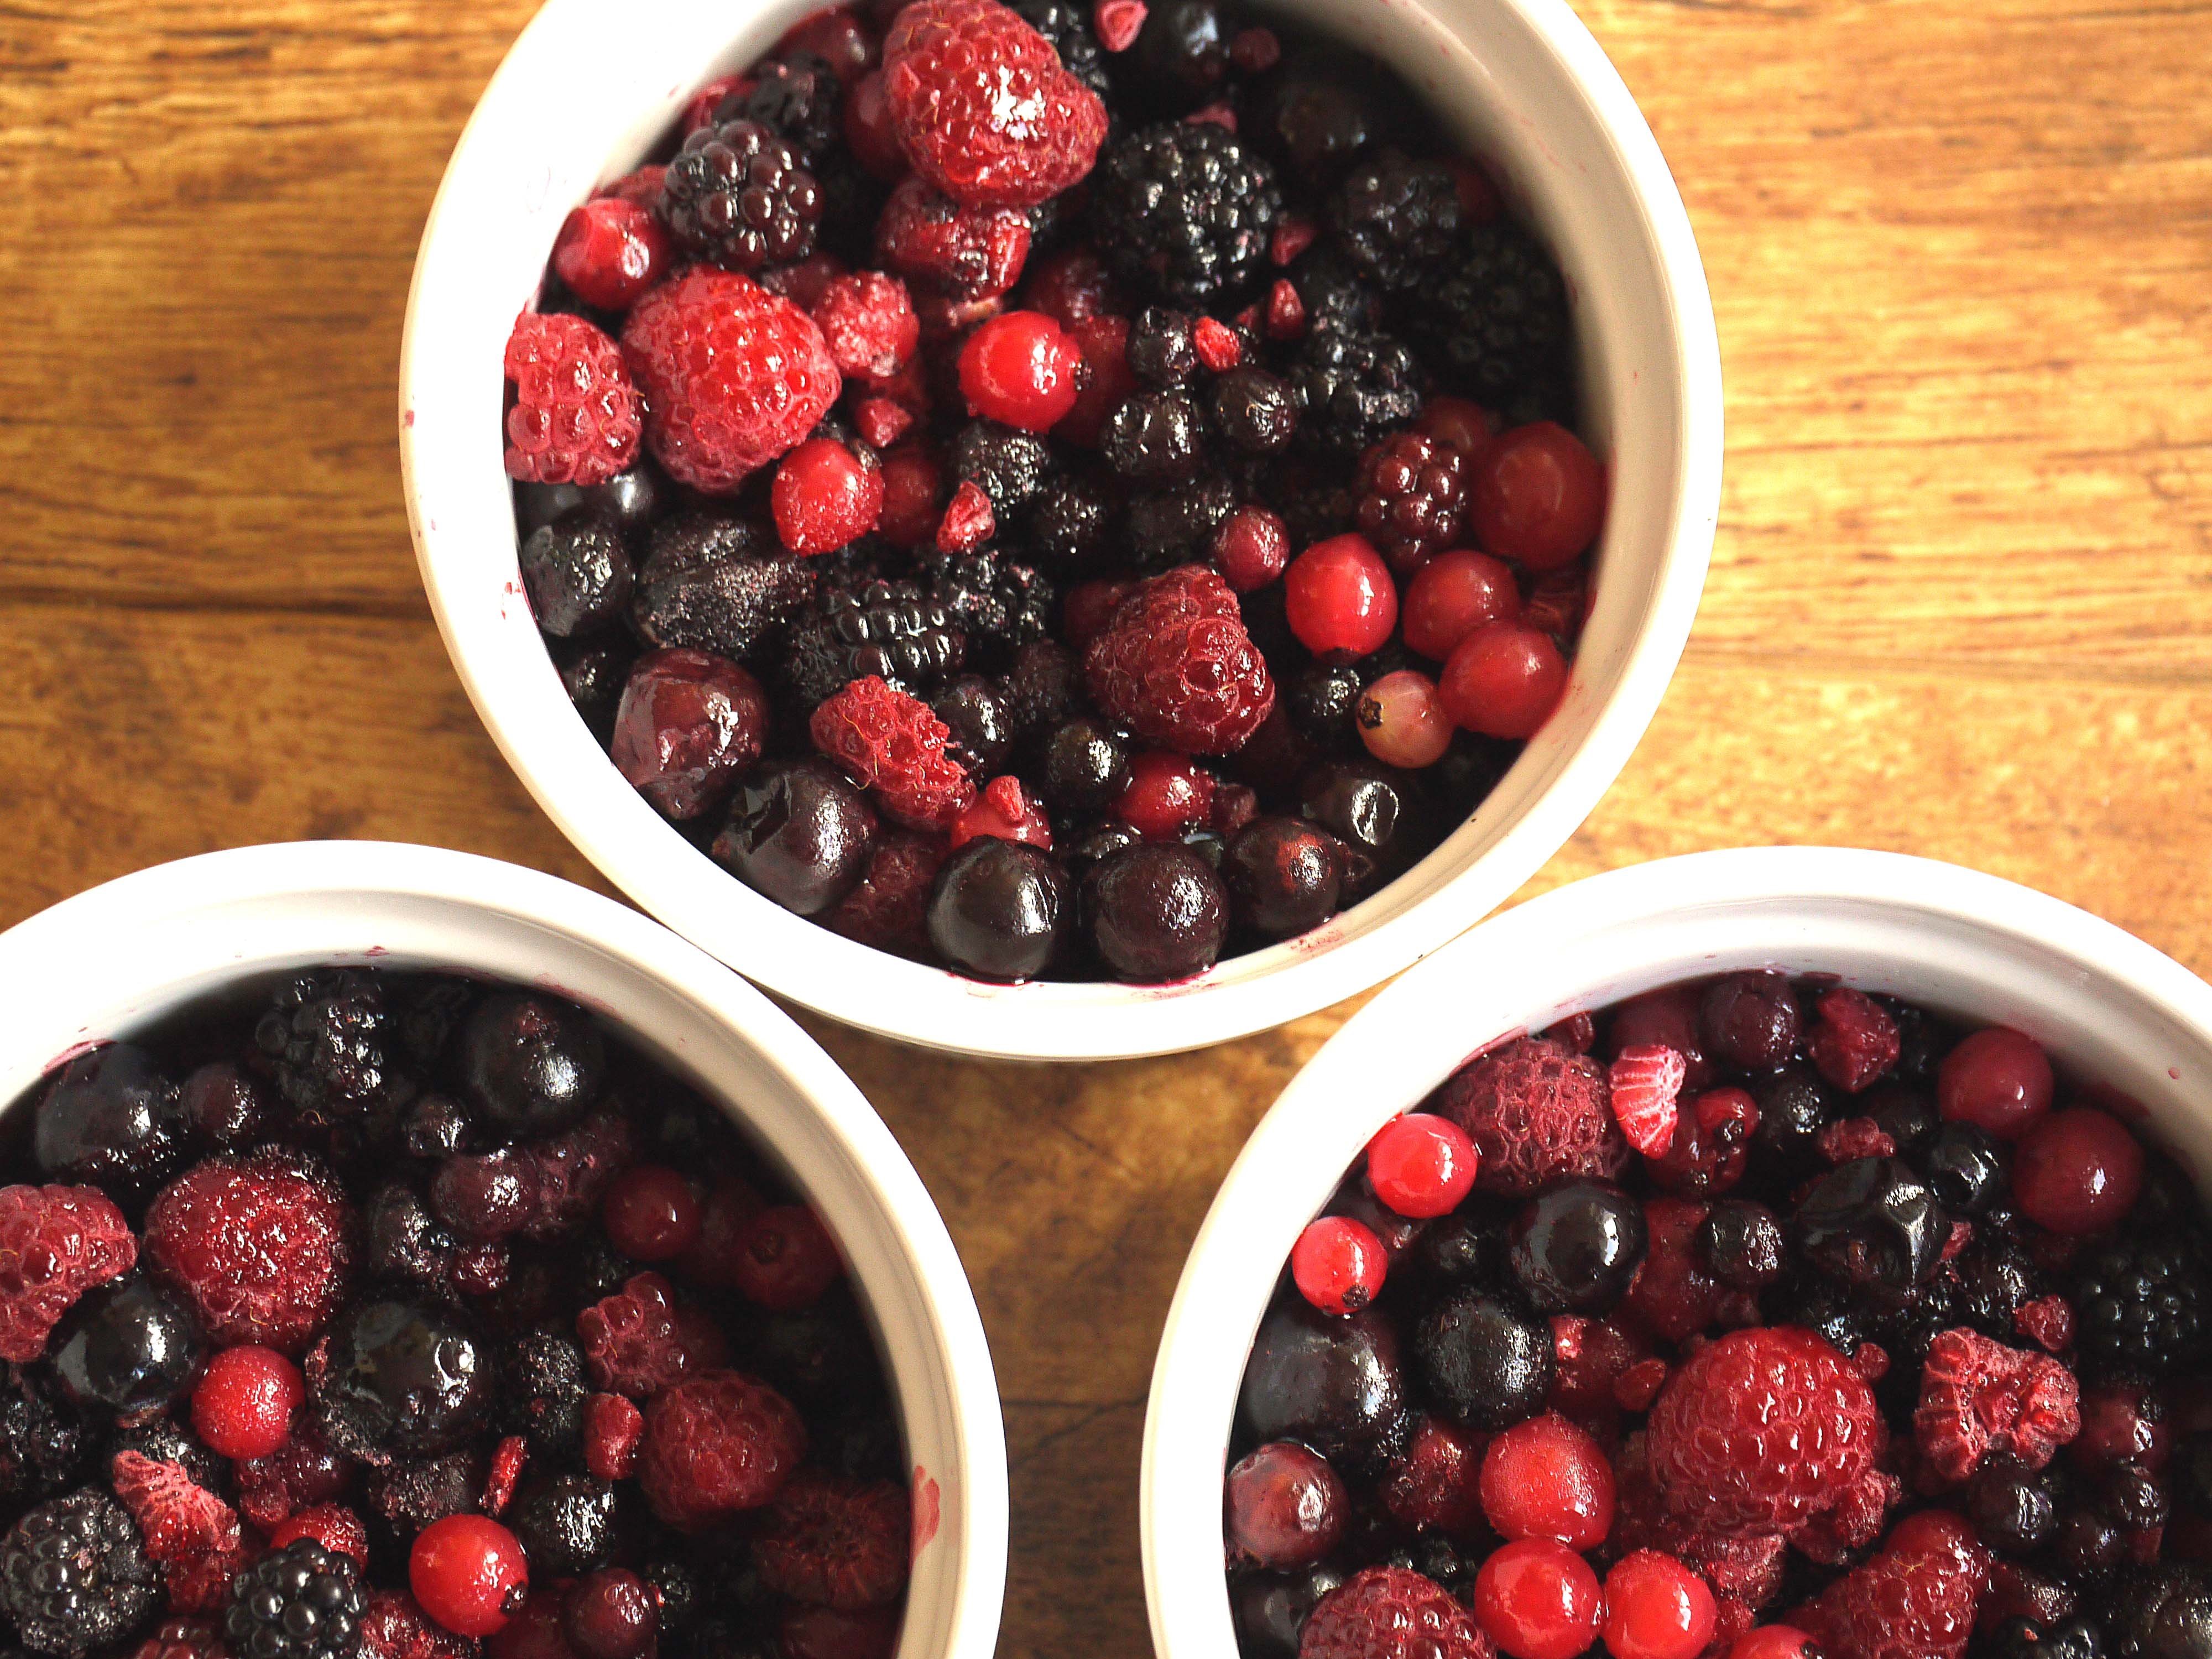 bowls of fresh berries to illustrate reducing refined sugar